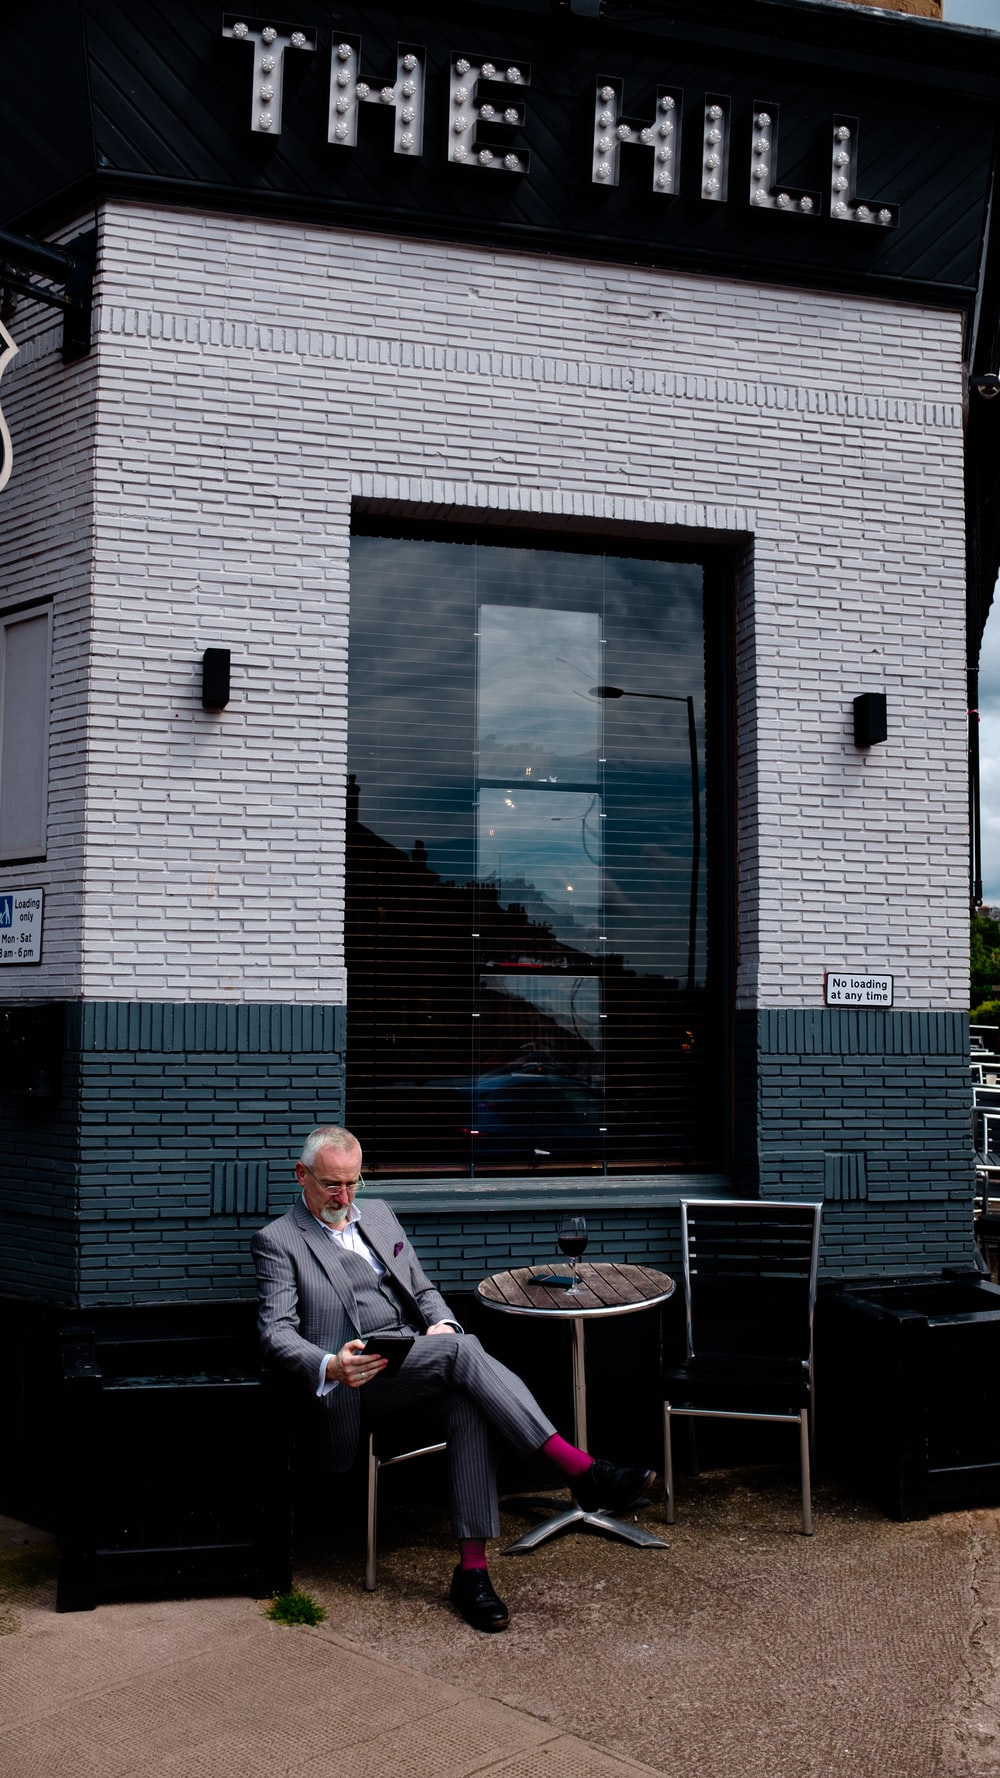 man in grey suit sitting on chair beside table in front of The Hill building